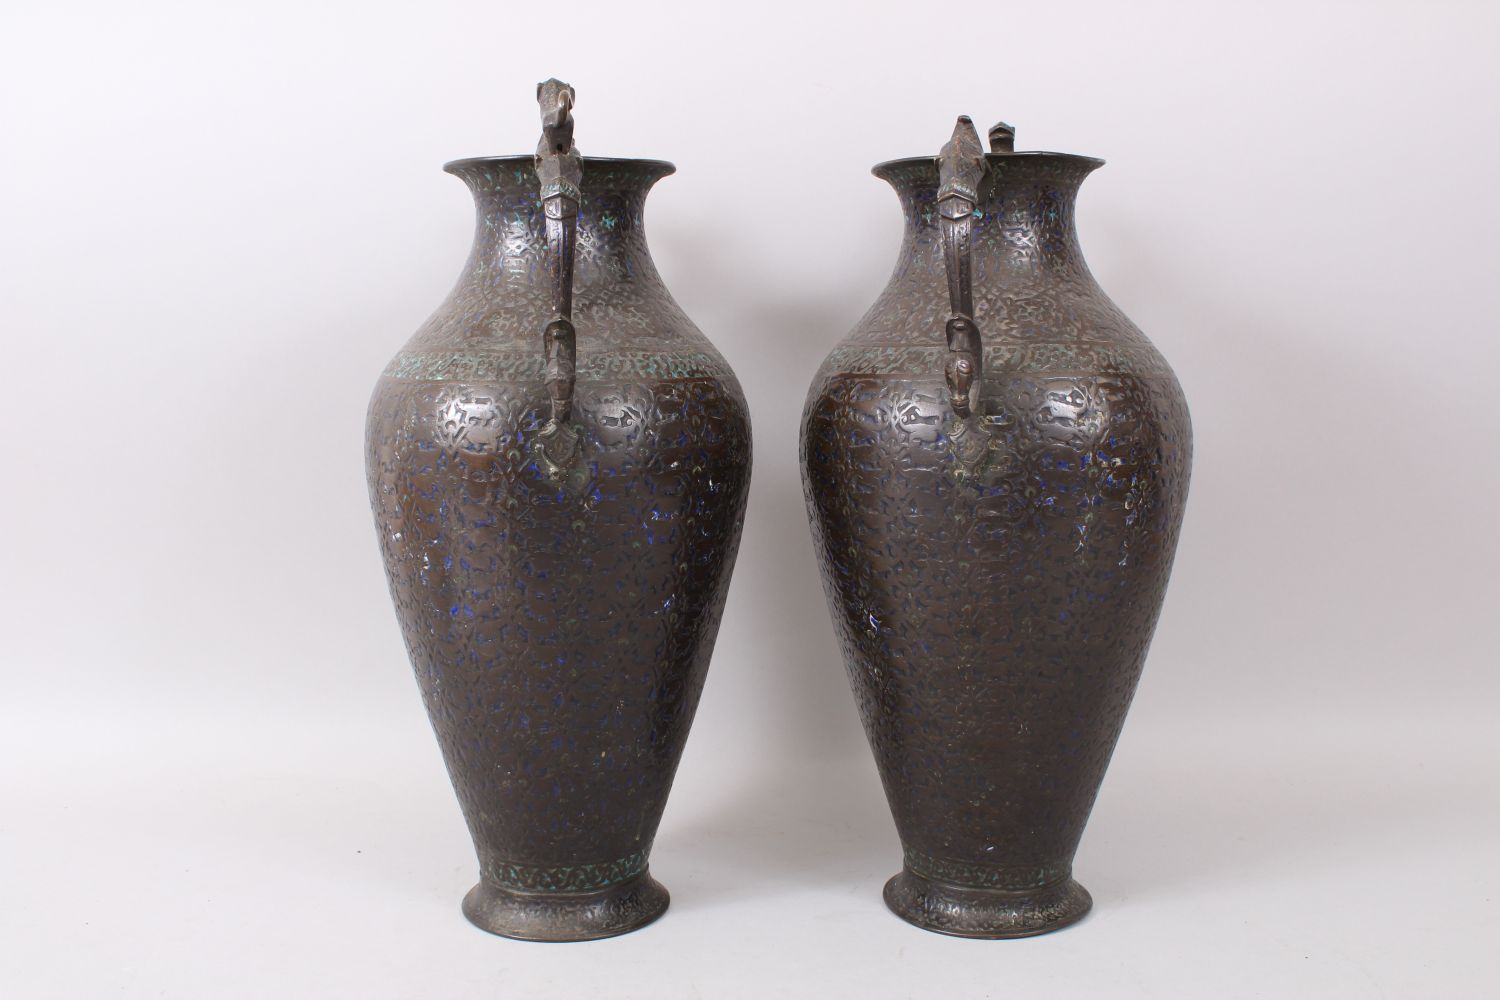 Lot 33 - A PAIR OF LARGE 19TH CENTURY INDIAN KASHMIRI ENAMELLED COPPER TWIN HANDLED VASES.